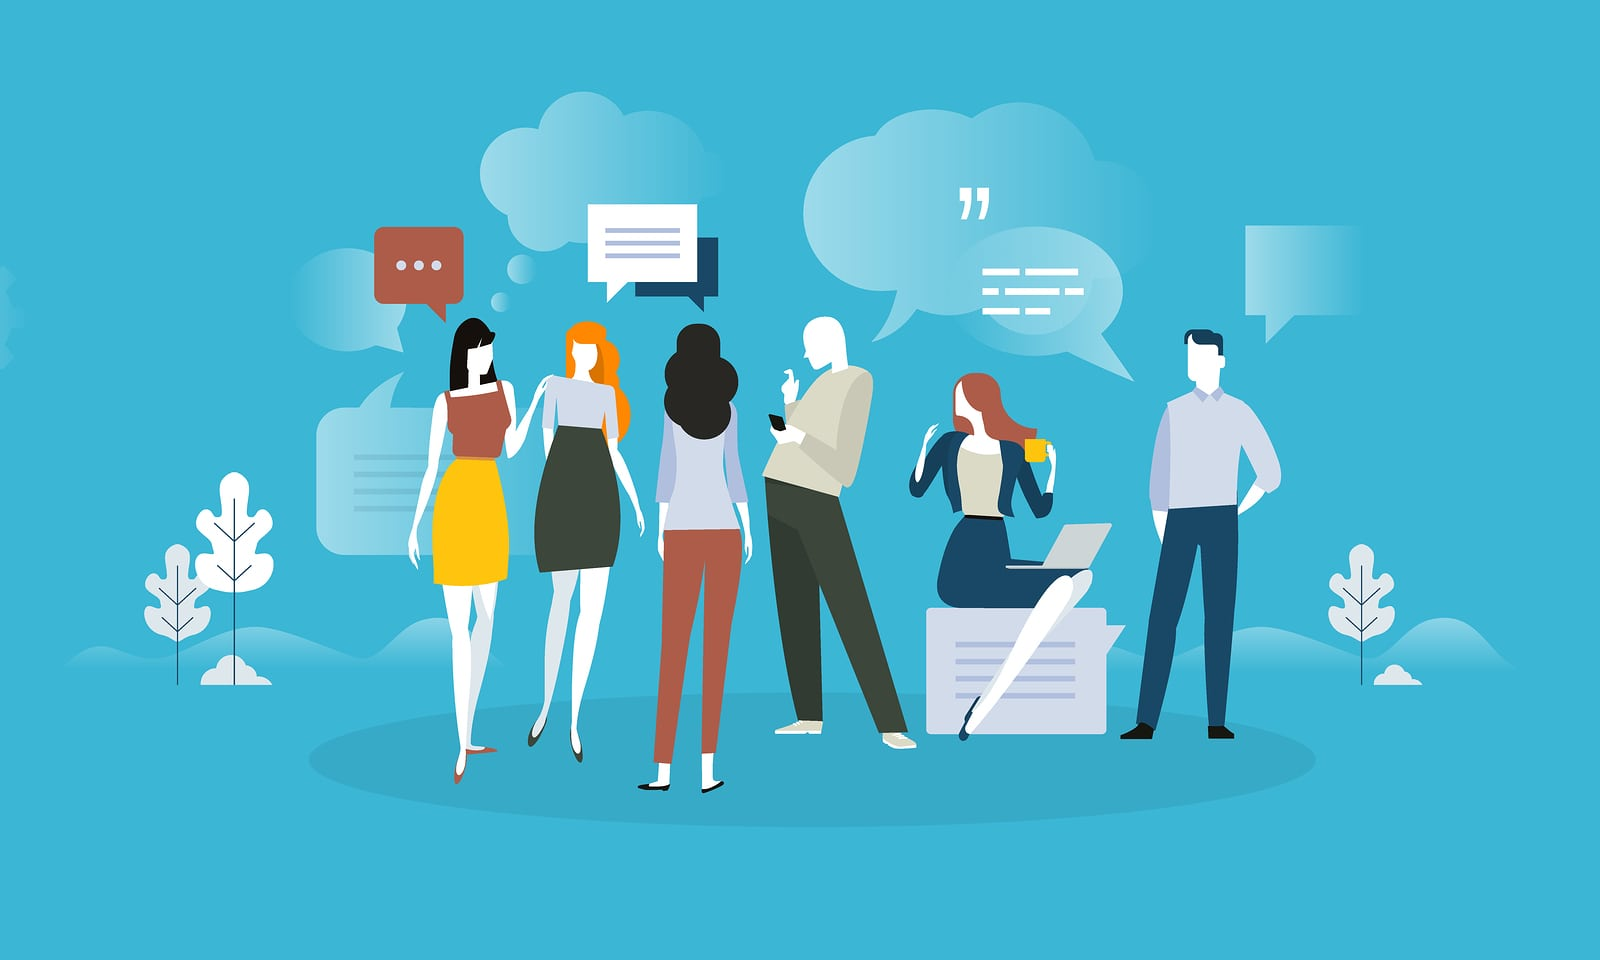 client testimonials and comments. Flat design concept for social media, product review, forum, communication. Vector illustration for web banner, advertising material.